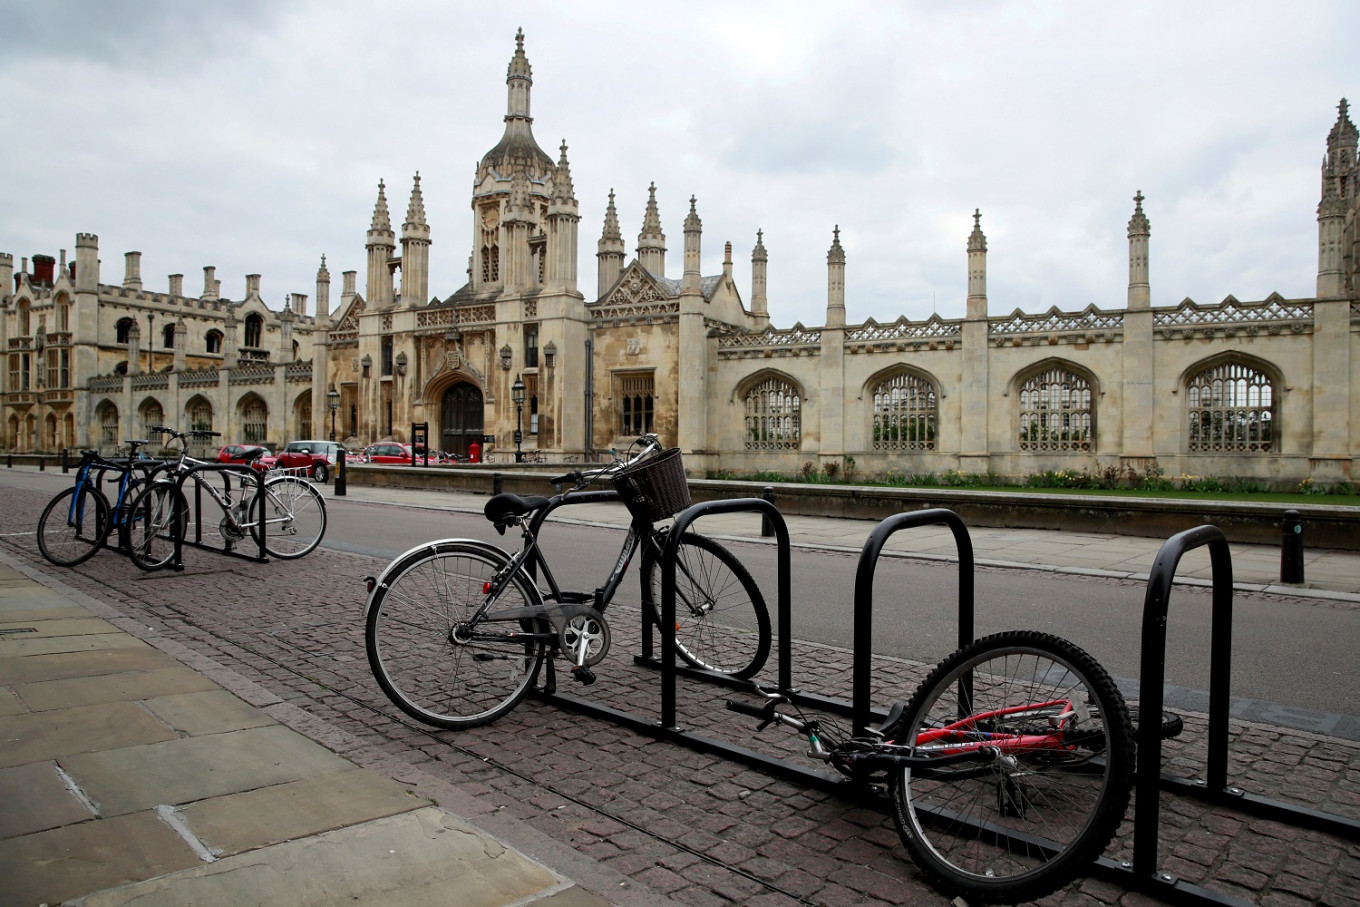 UK's Cambridge University cancels face-to-face lectures until summer 2021